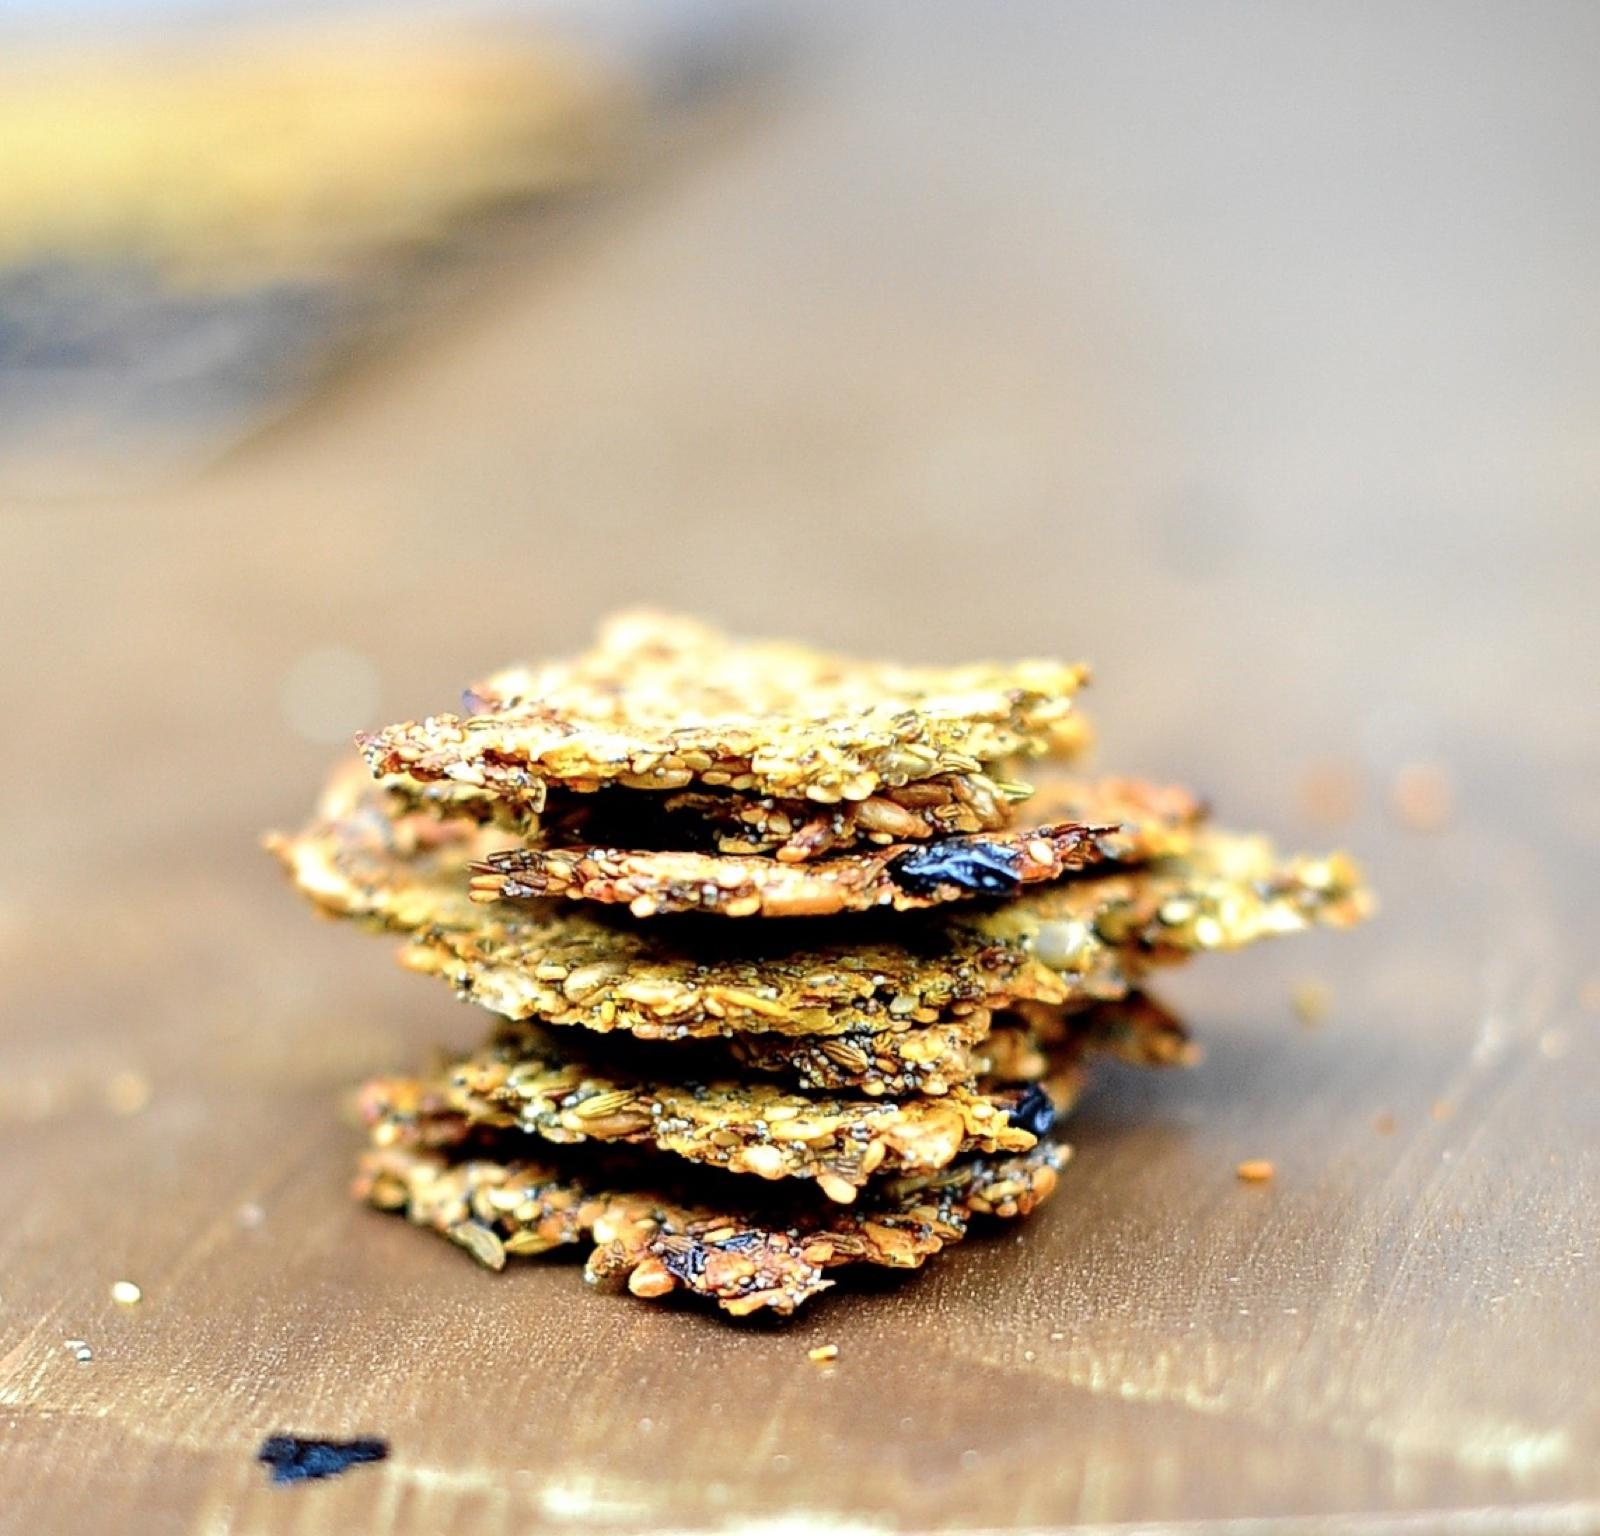 Seeded rosemary crackers stacked on a wood board